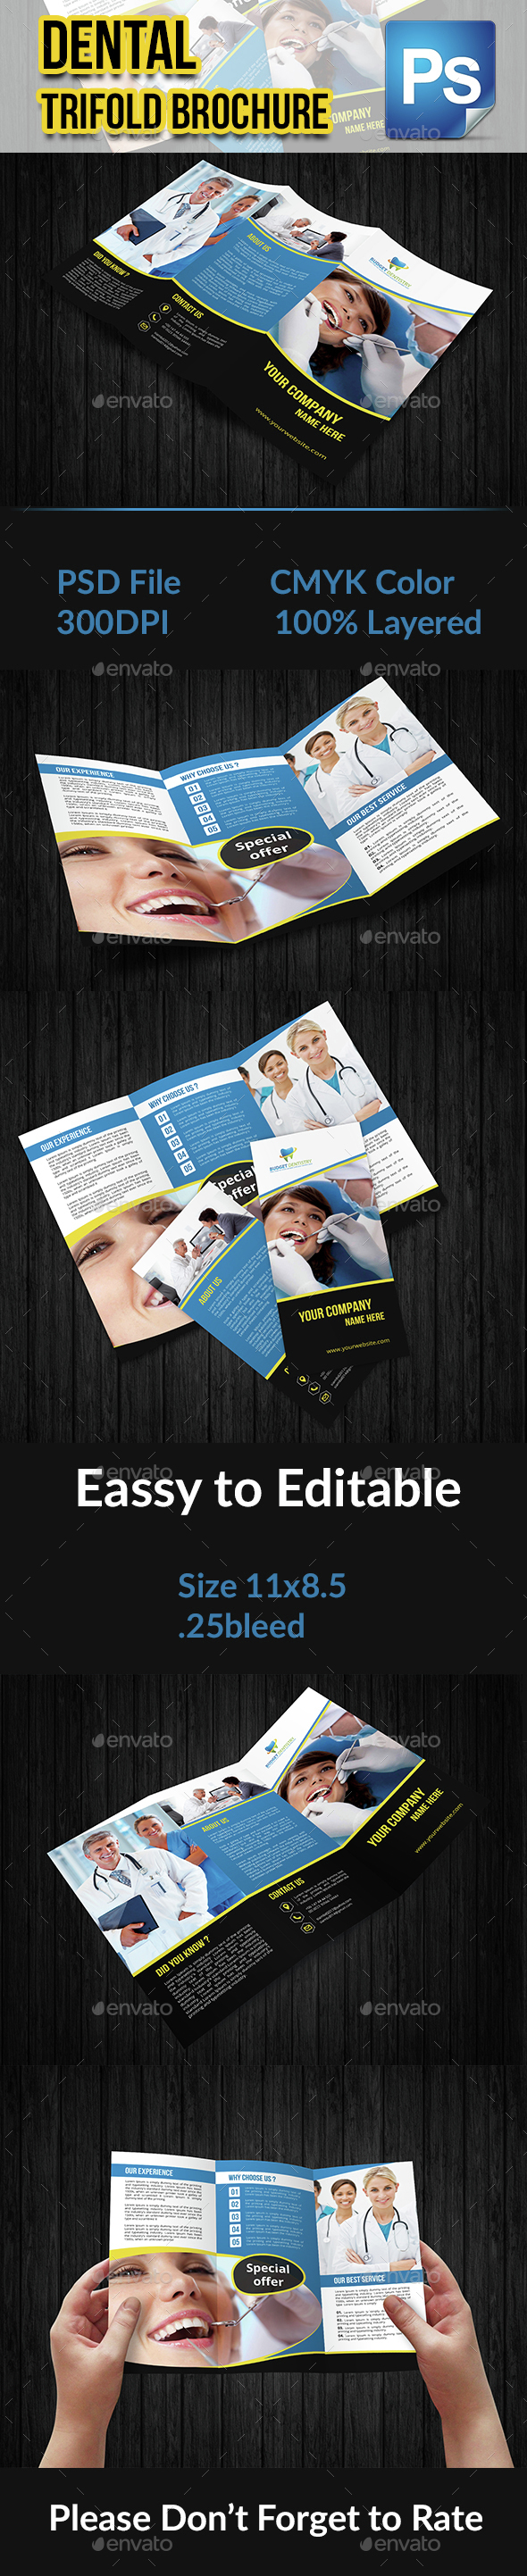 Dental Trifold Brochure Template - Brochures Print Templates